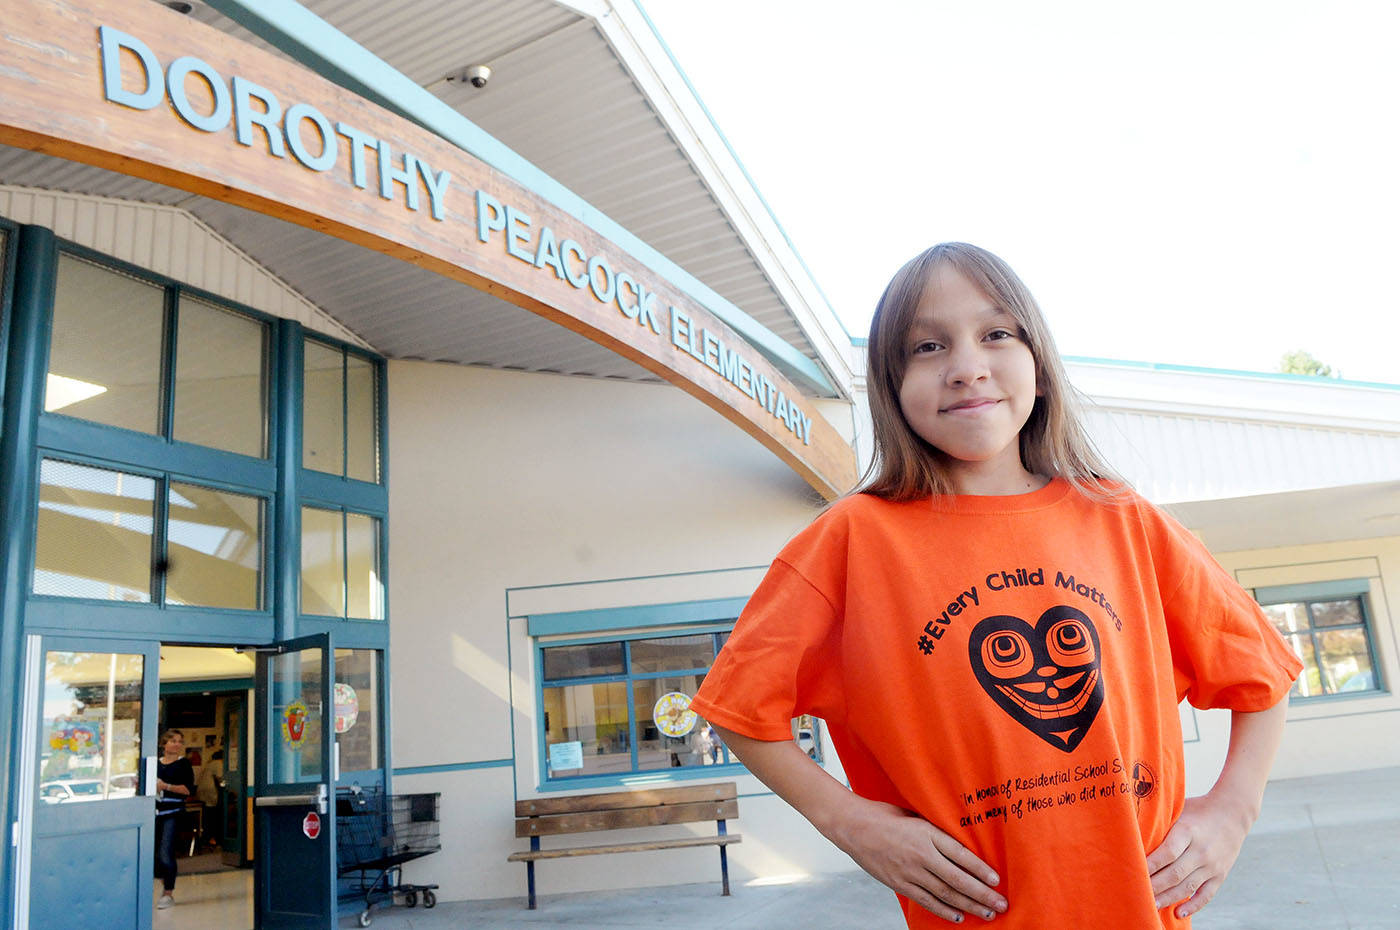 Dorothy Peacock Grade 5 student designs this year's Orange Shirt